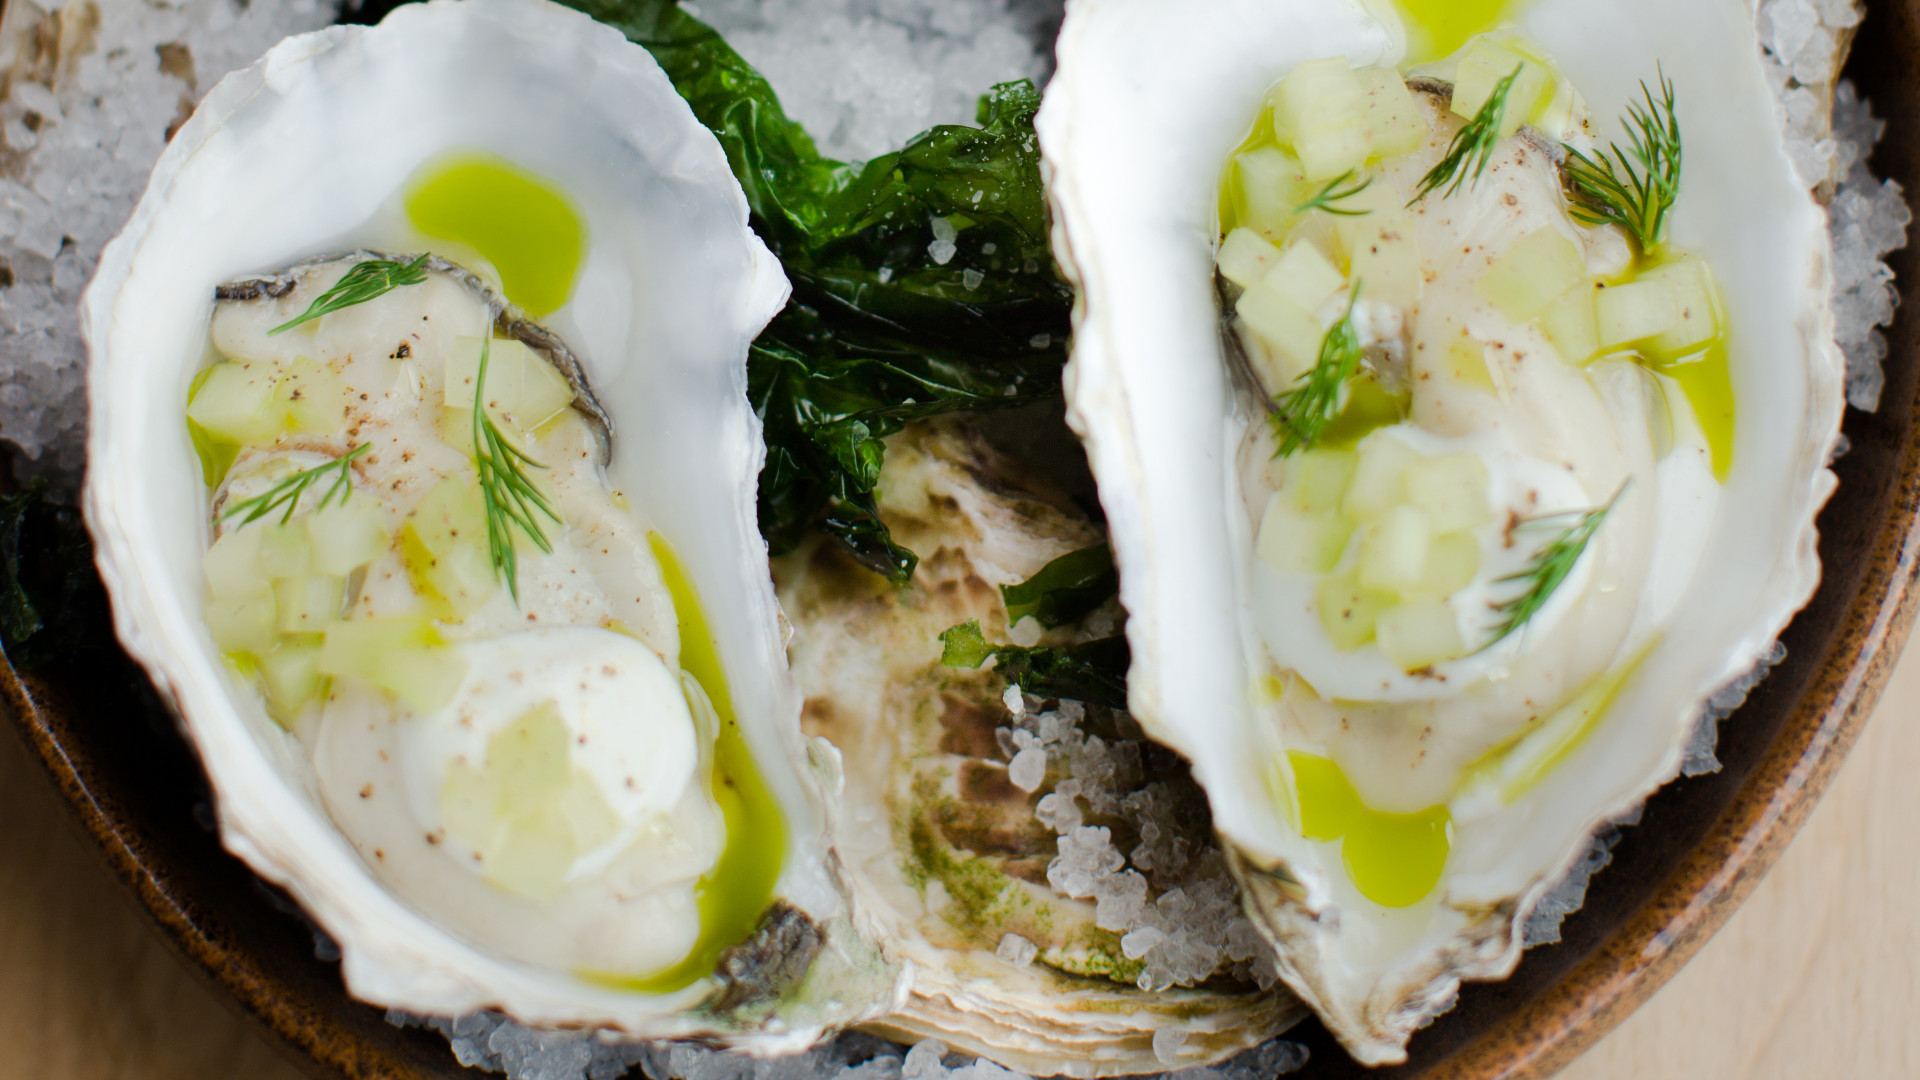 Pickled oysters, celery, dill and horseradish cream